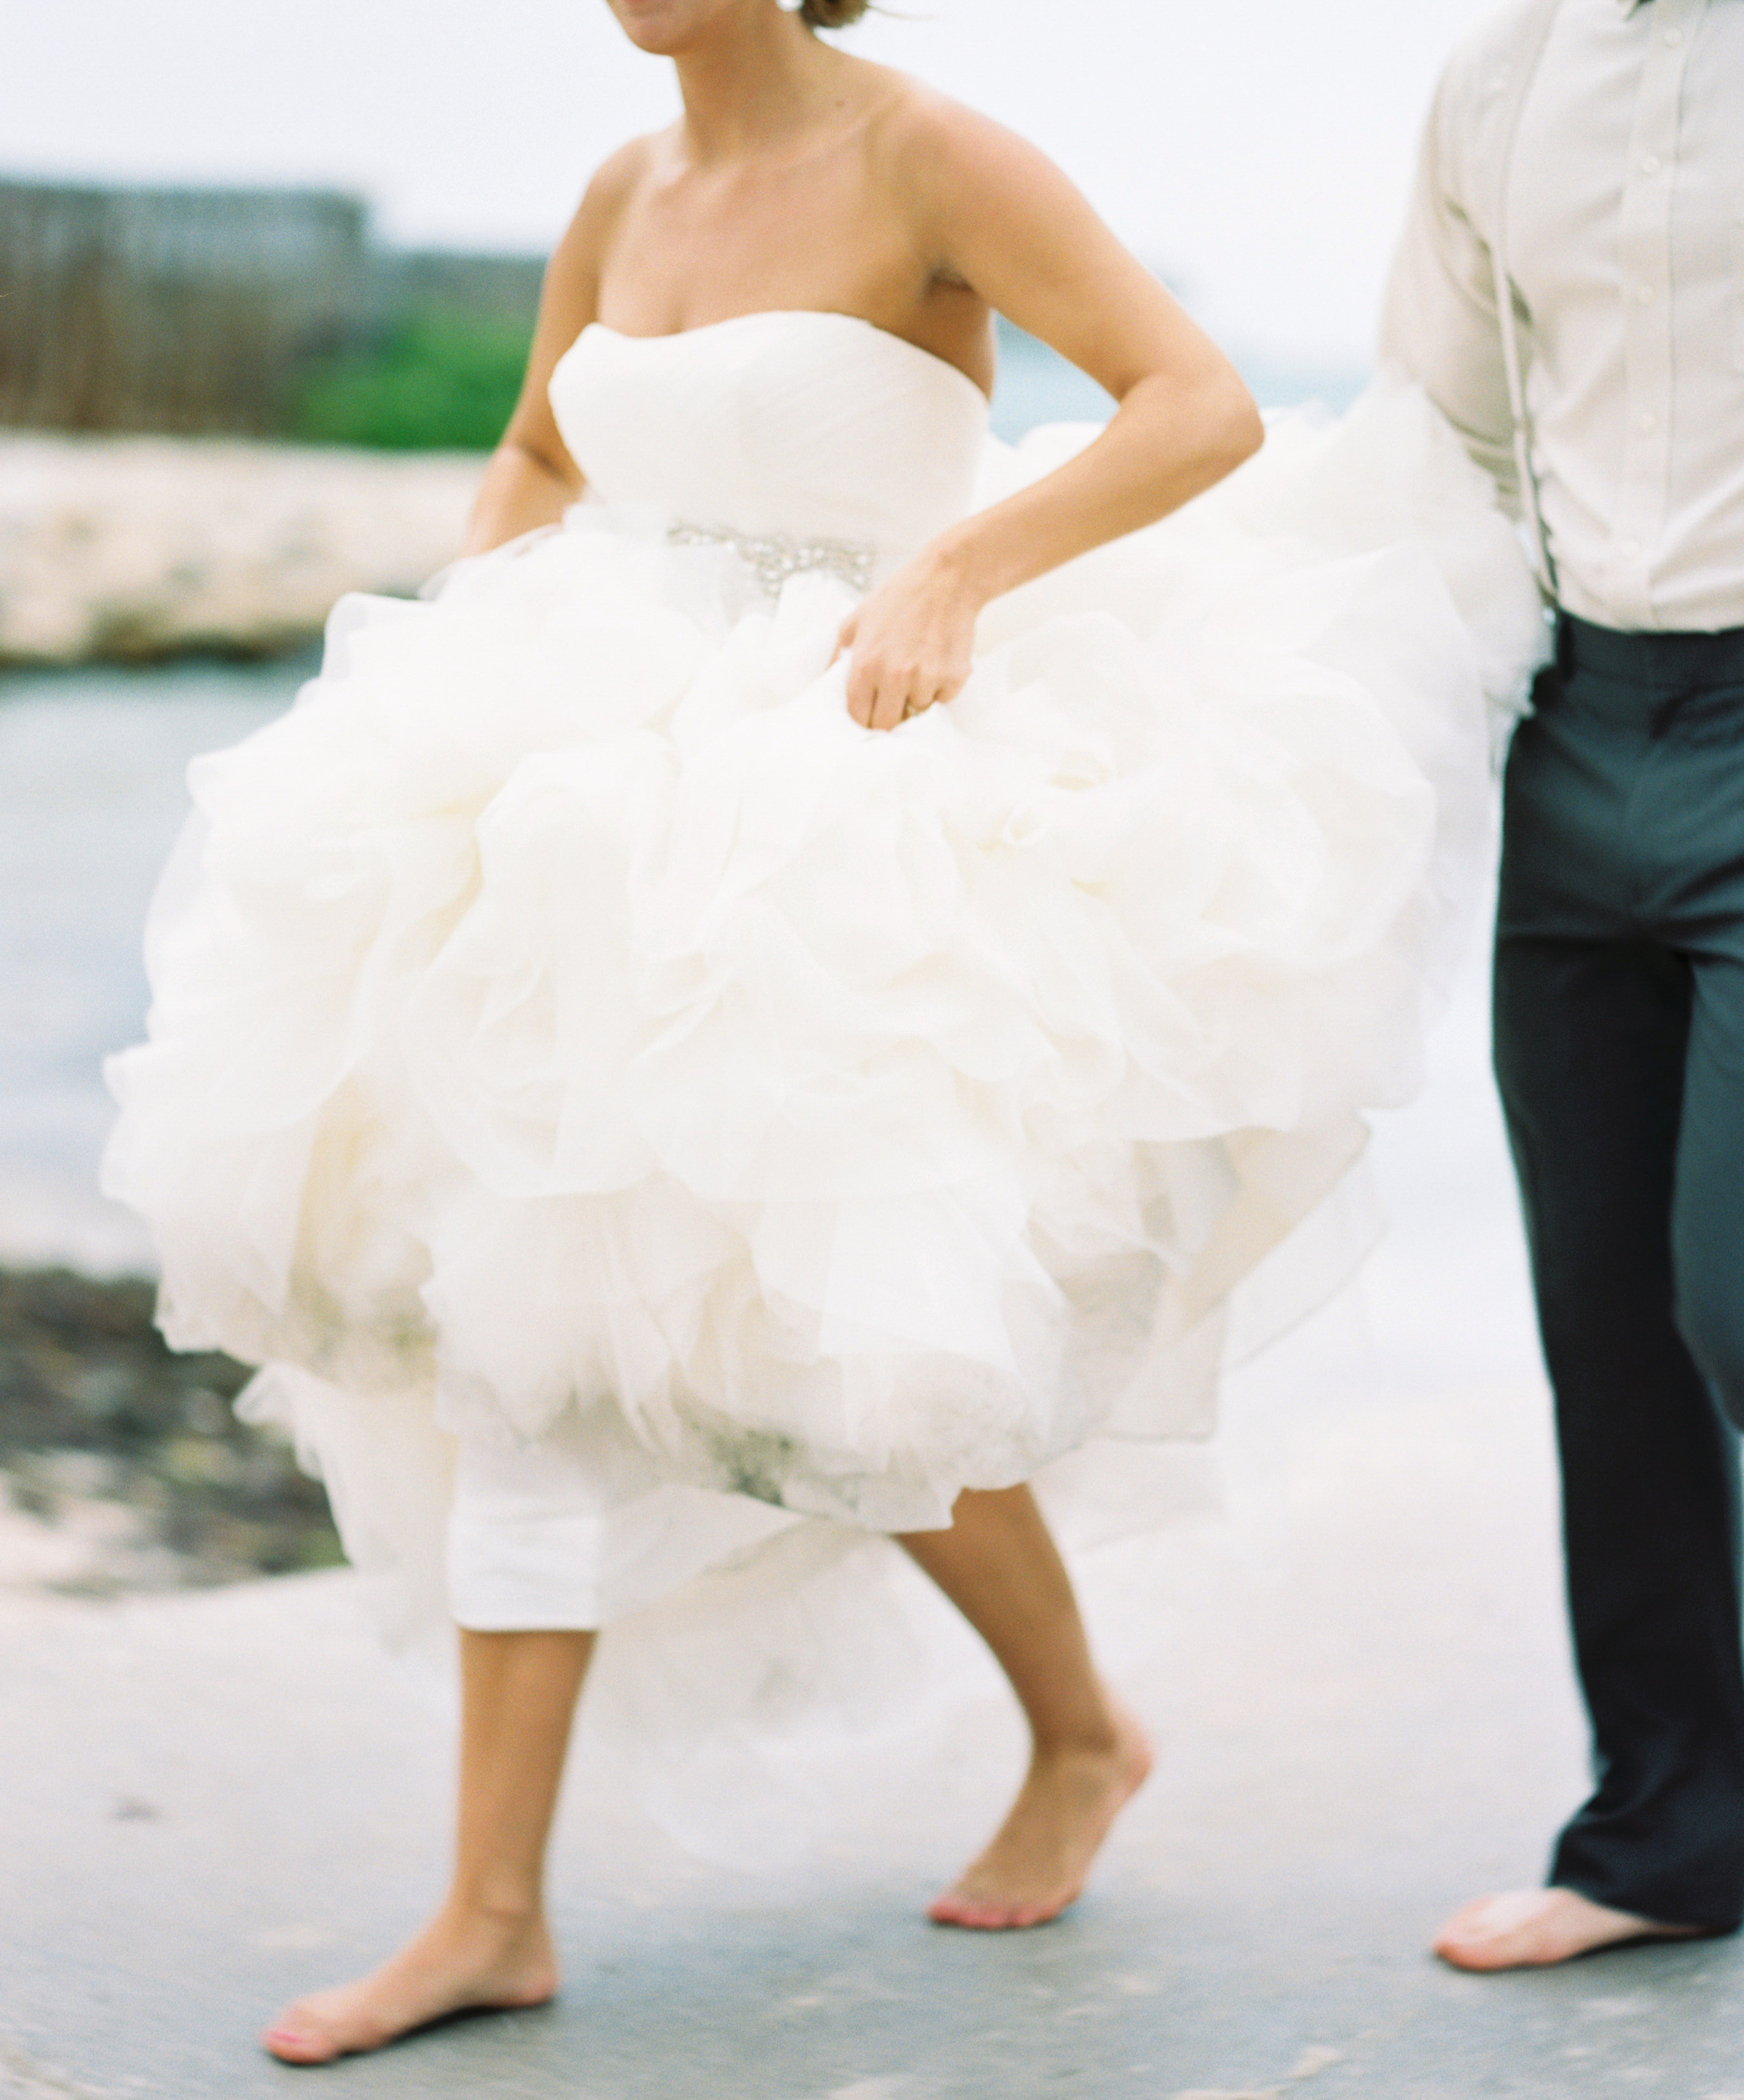 Key West Florida Wedding Film Photographer Photovision Chicago Wedding Photographer 26.jpg